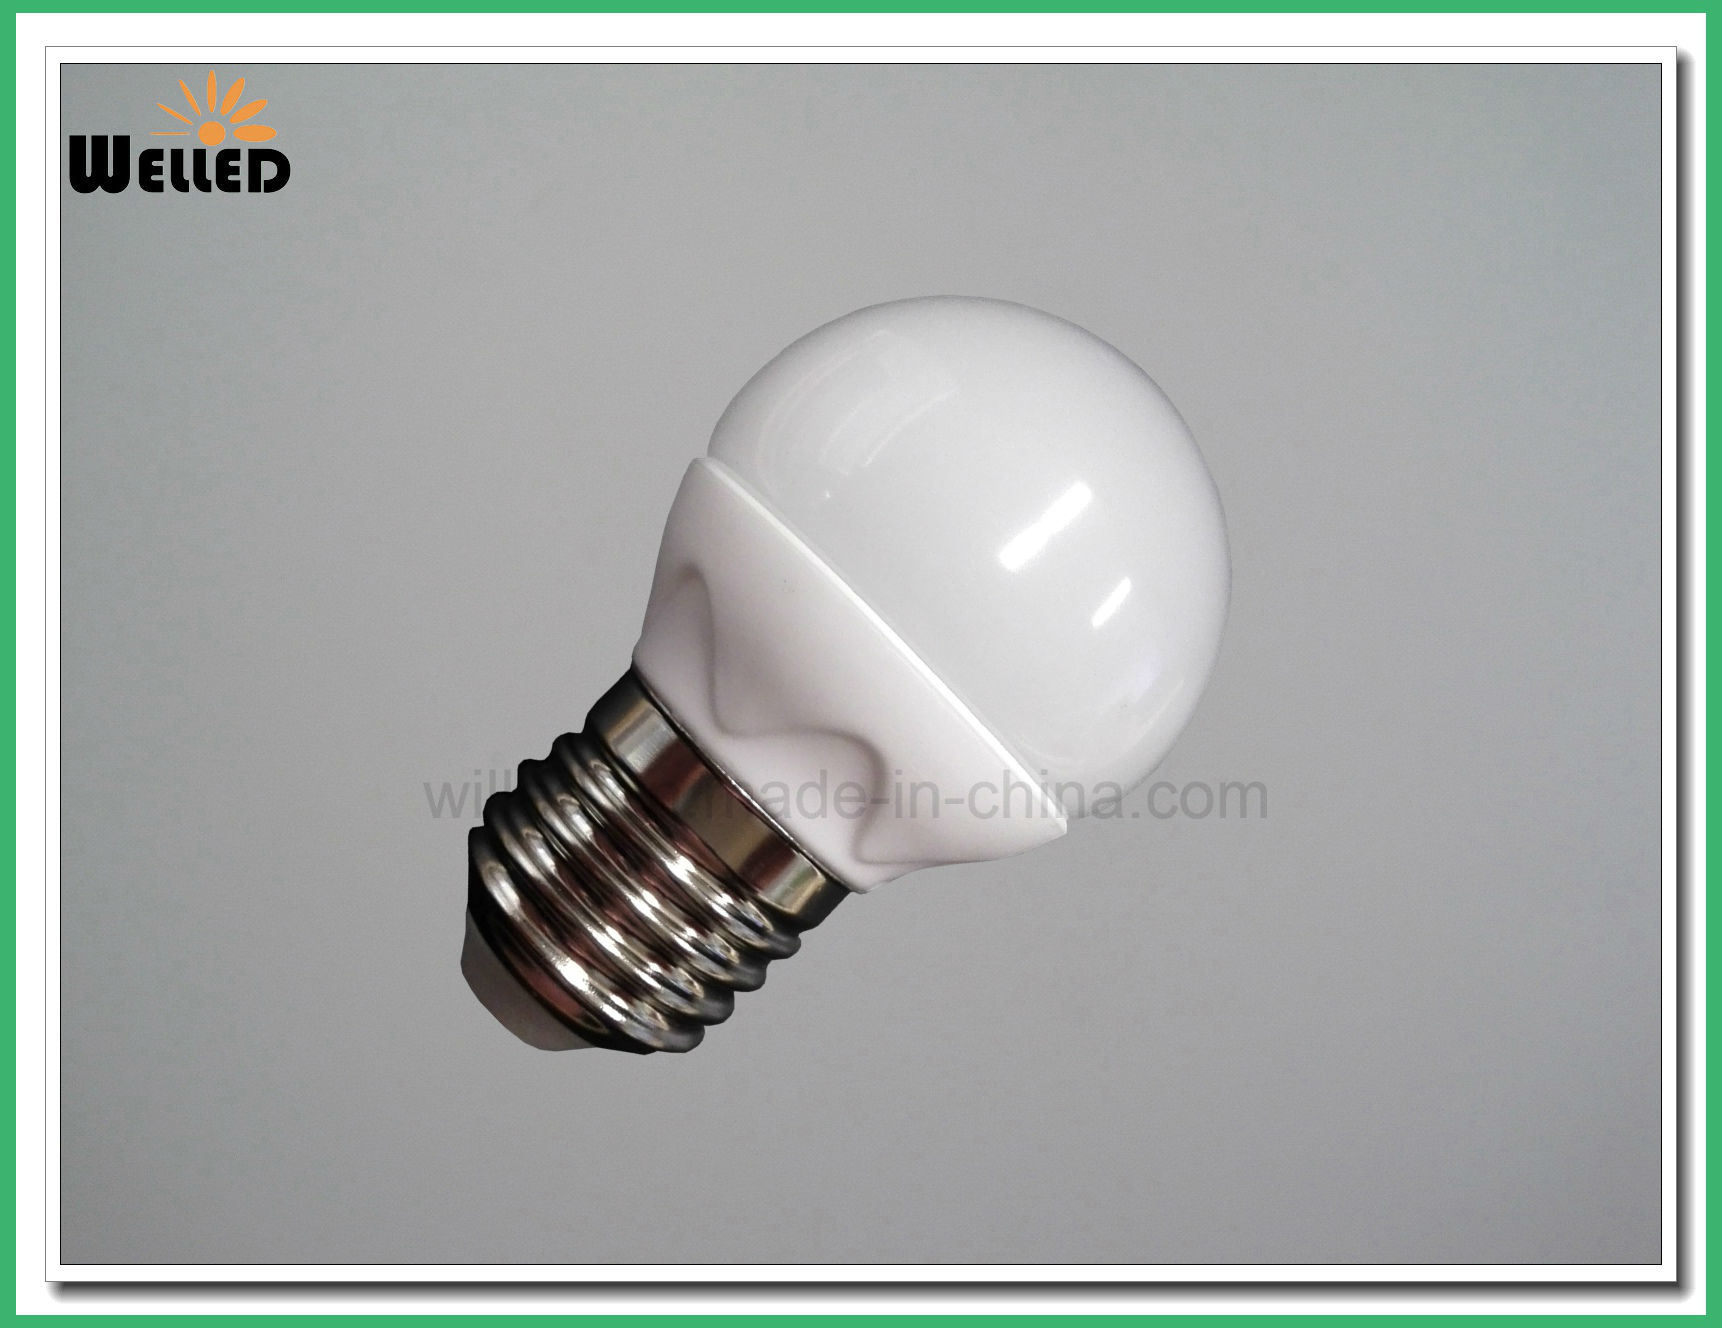 3W 5W Dimmable G45 Globe LED Bulb Light 400lm E27 B22 with Ceramic Housing